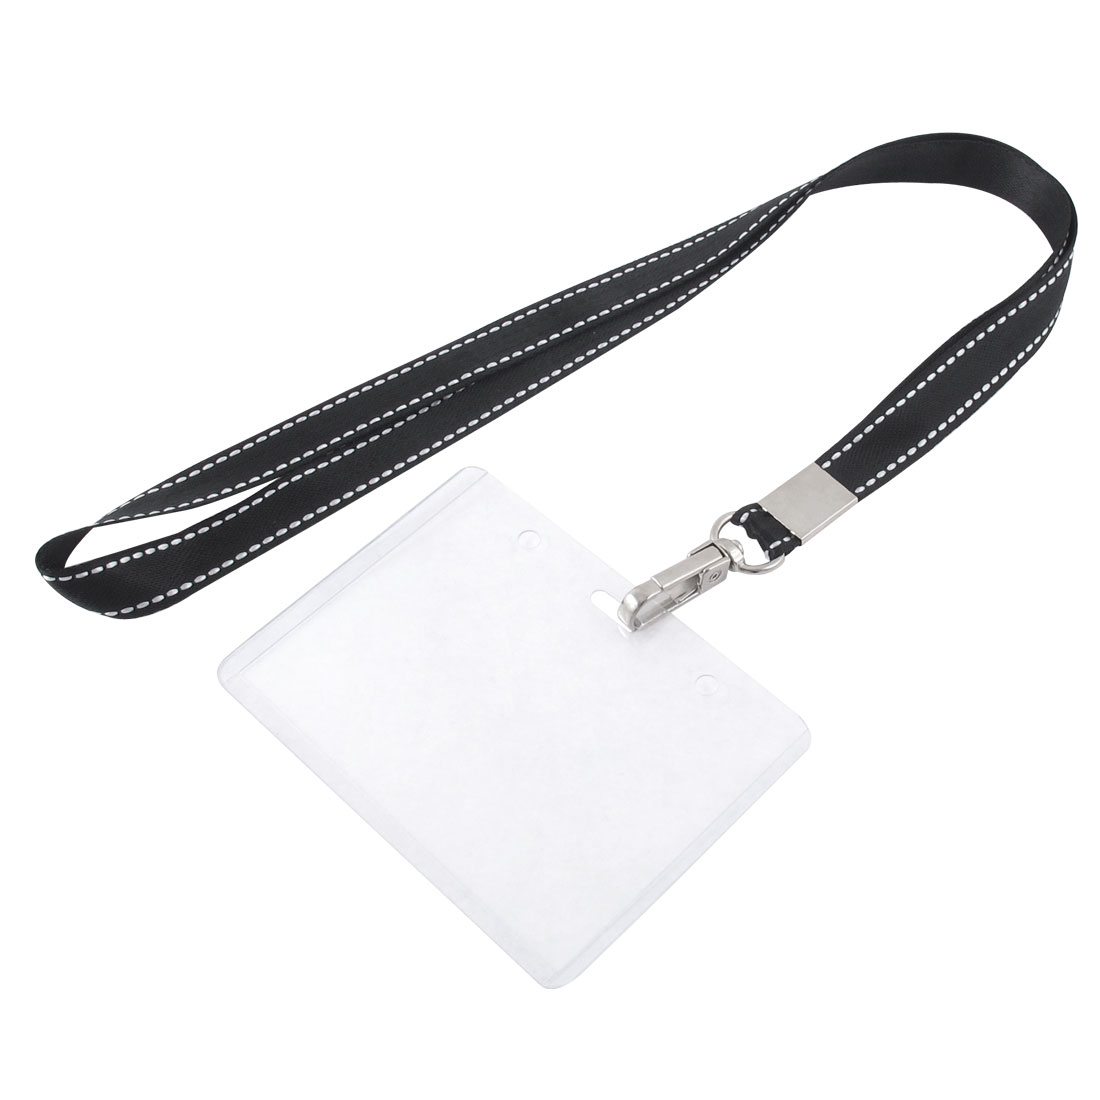 Neck Strap Plastic Horizontal ID Name Employee Card Tag Holder Black Clear